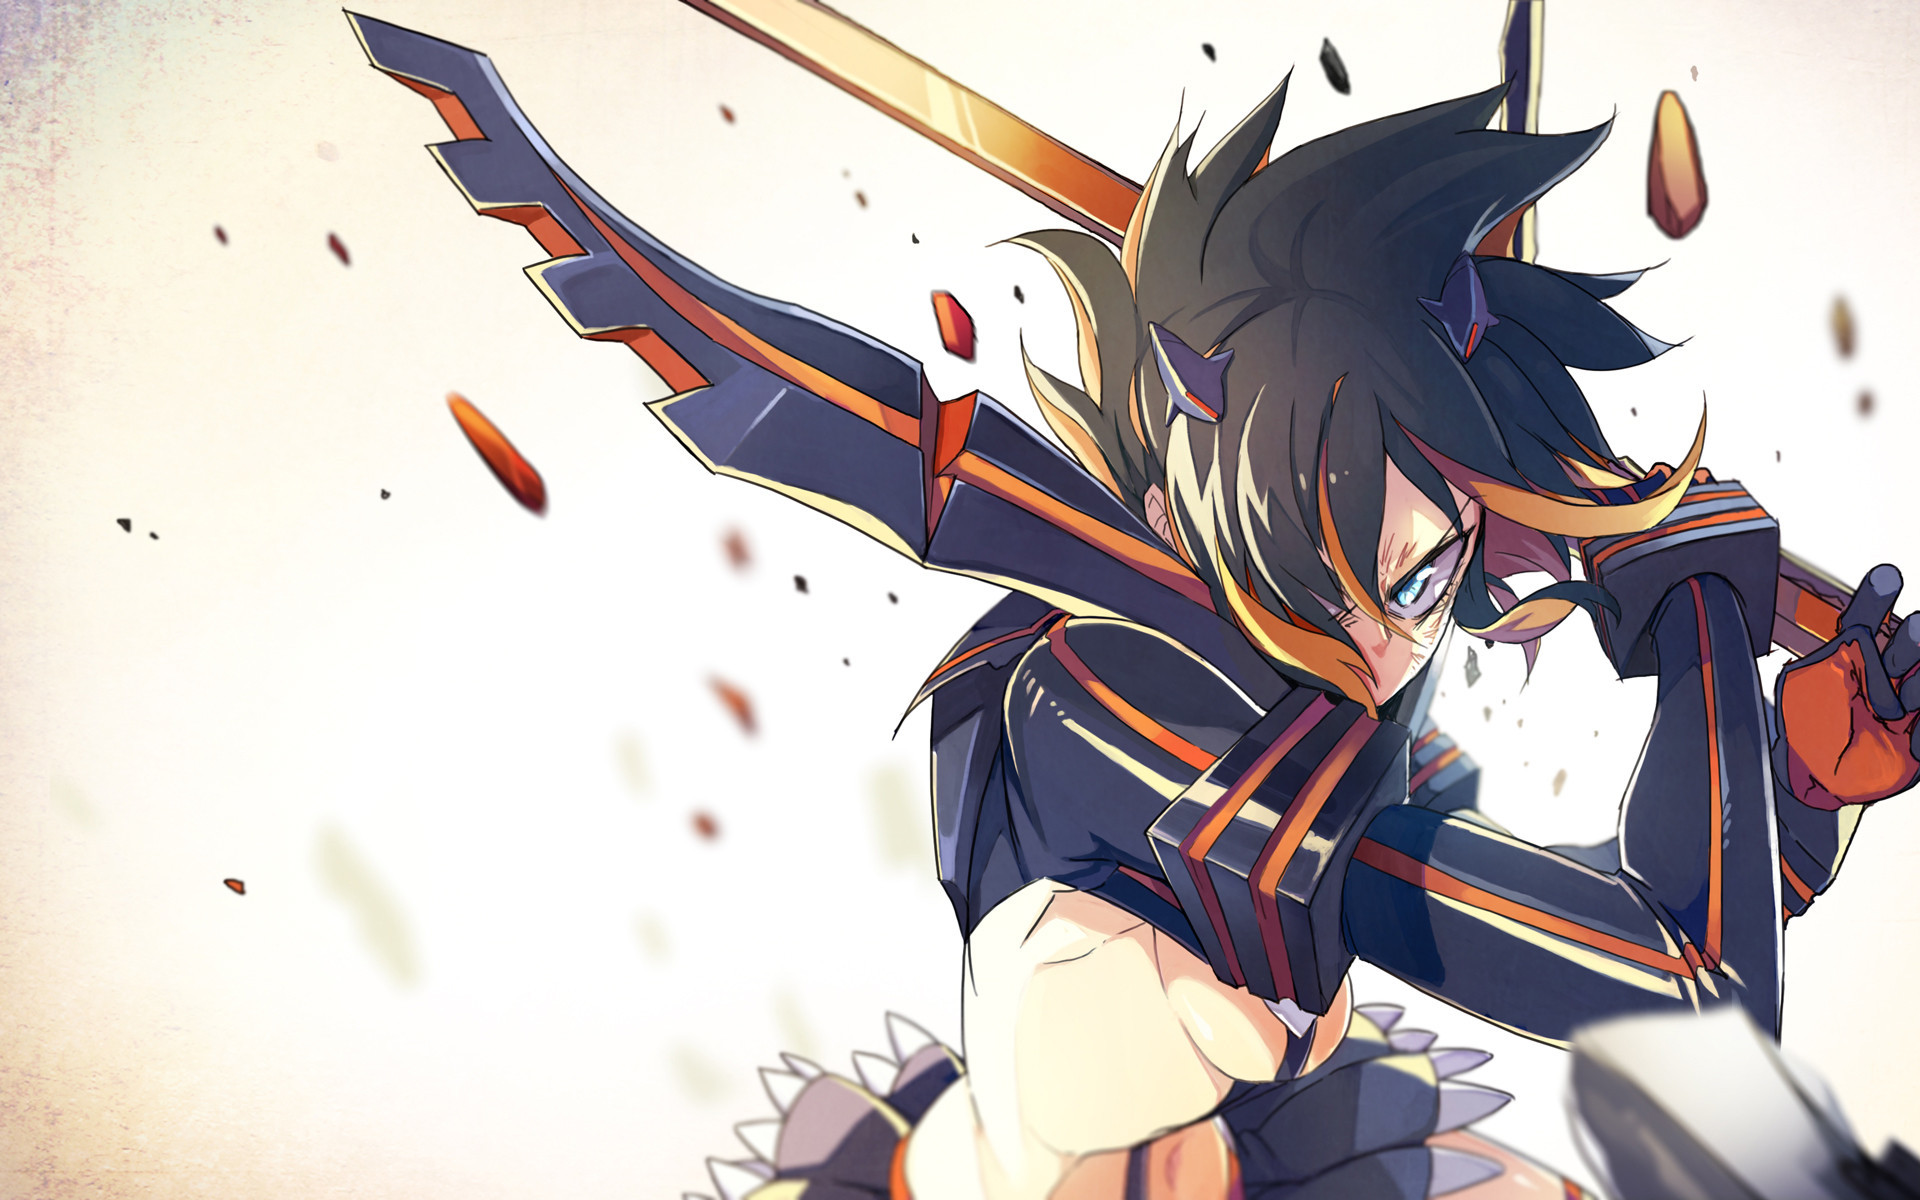 Badass Anime Wallpapers 60 Images